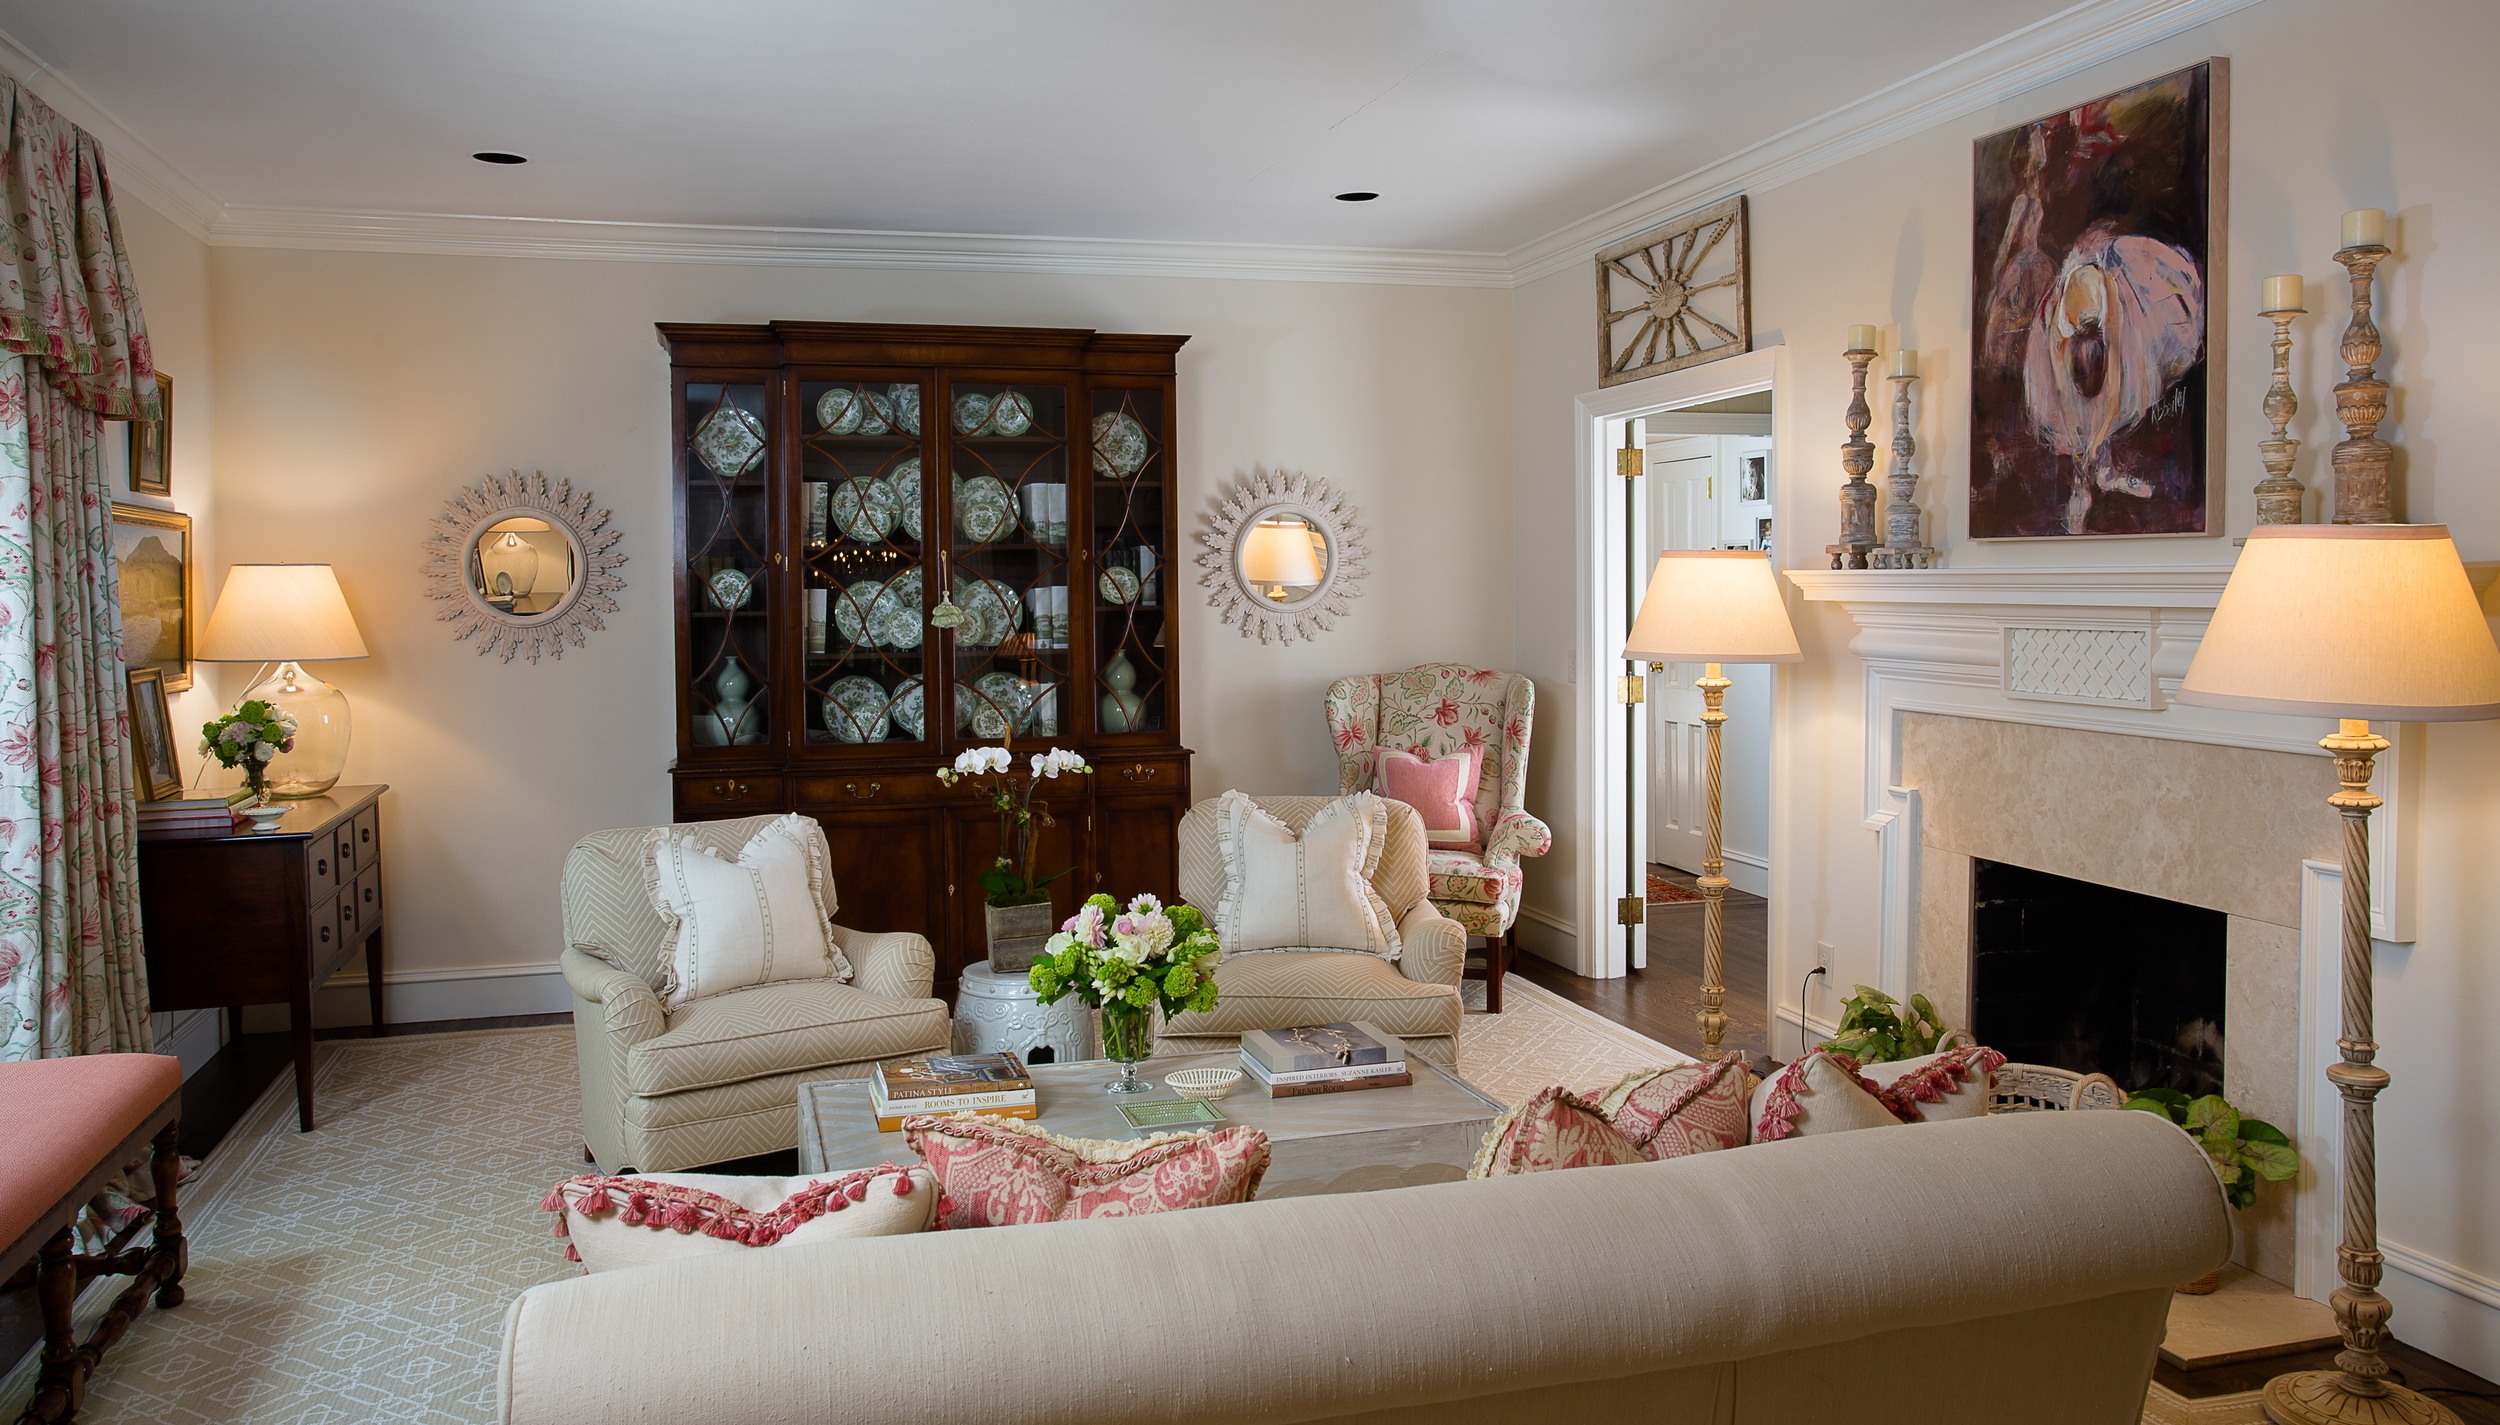 GWP_KELLETTINTERIORS_10222012-0023.jpg